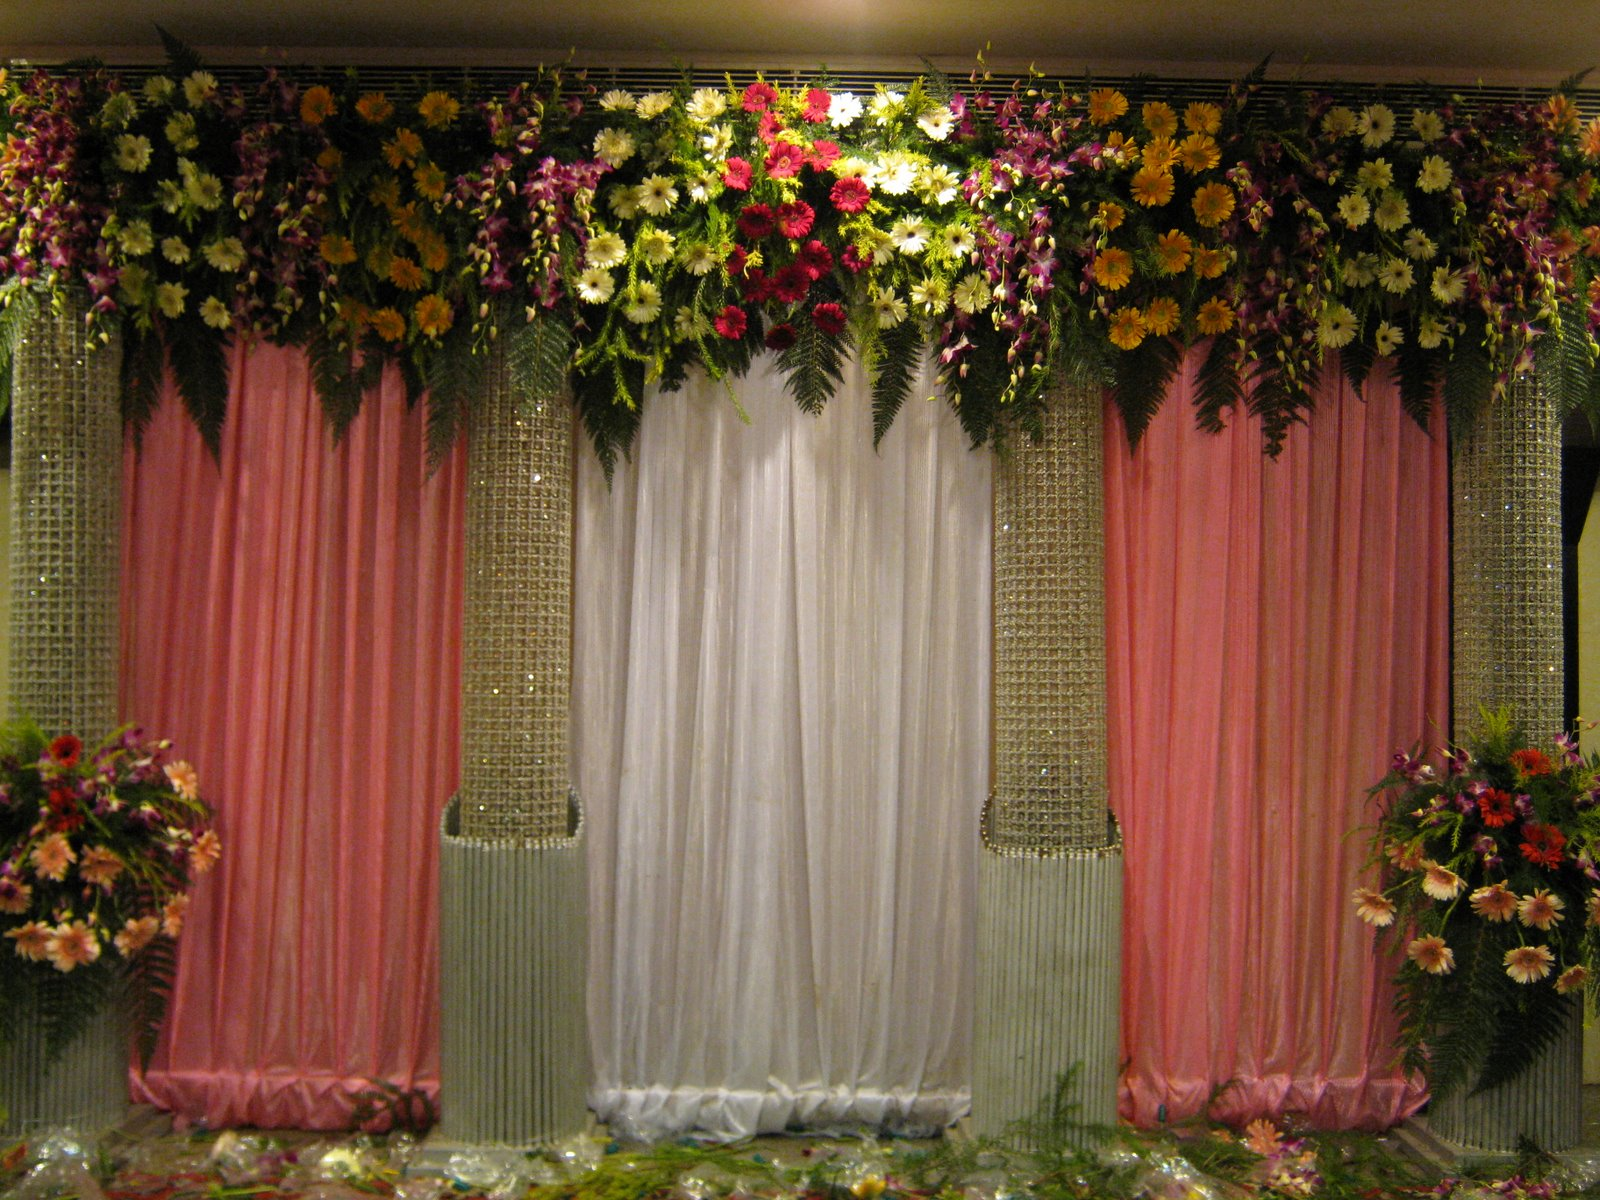 Flower Decor Enchanting Of Indian Wedding Decorations Flowers Photos